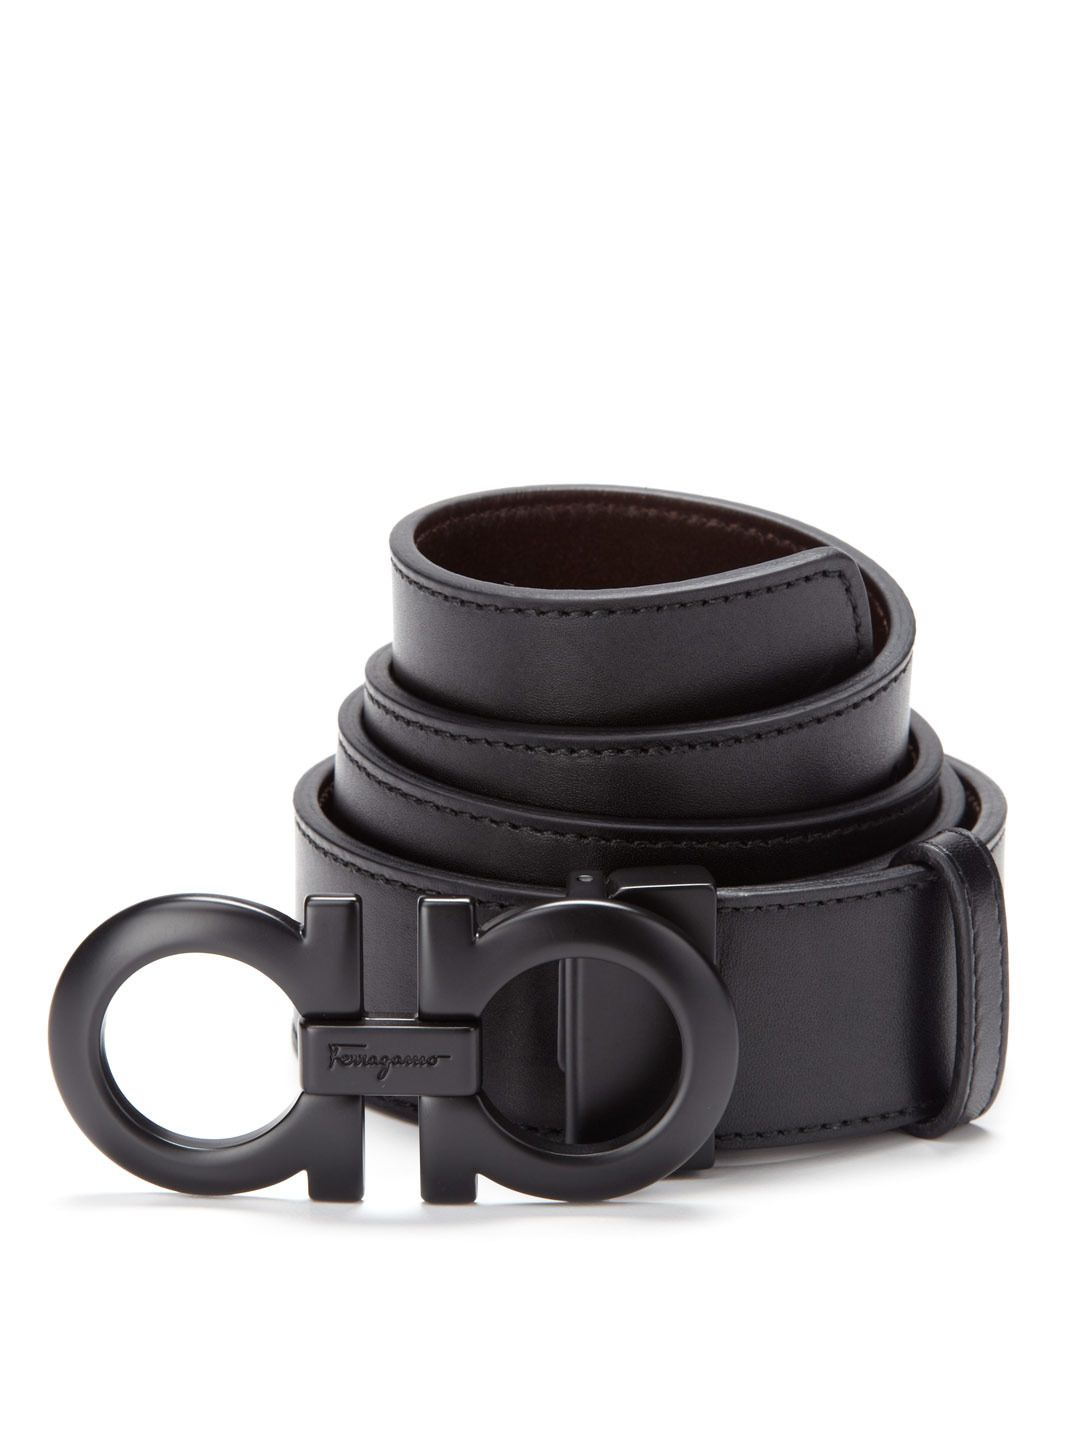 2da7f2e7121 Great low profile belt (doesn t protude or add inches to your waist). Hard  to find.